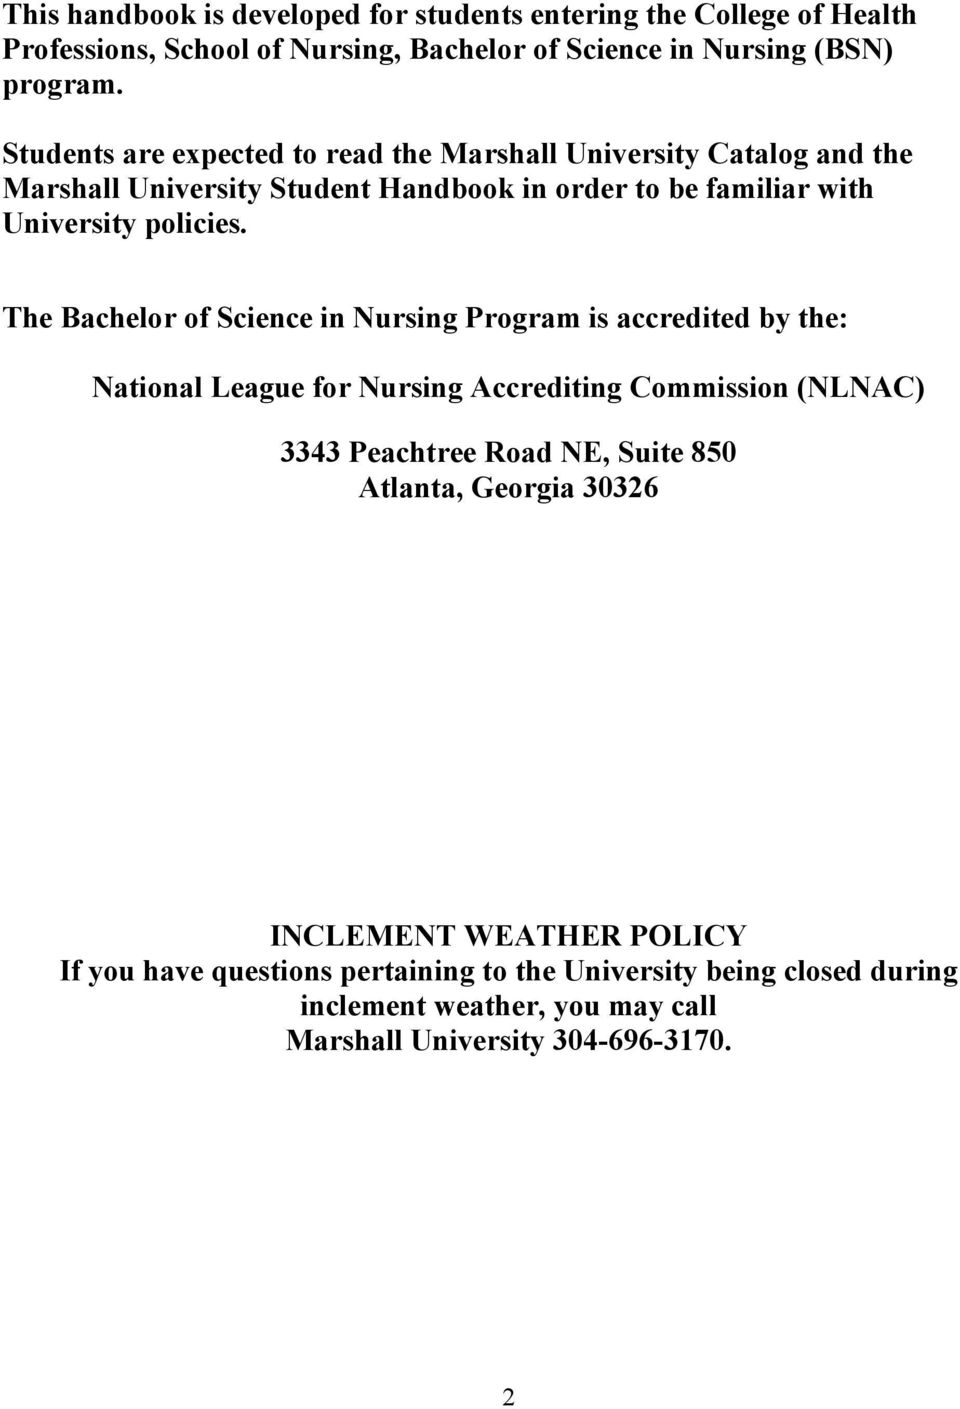 The Bachelor of Science in Nursing Program is accredited by the: National League for Nursing Accrediting Commission (NLNAC) 3343 Peachtree Road NE, Suite 850